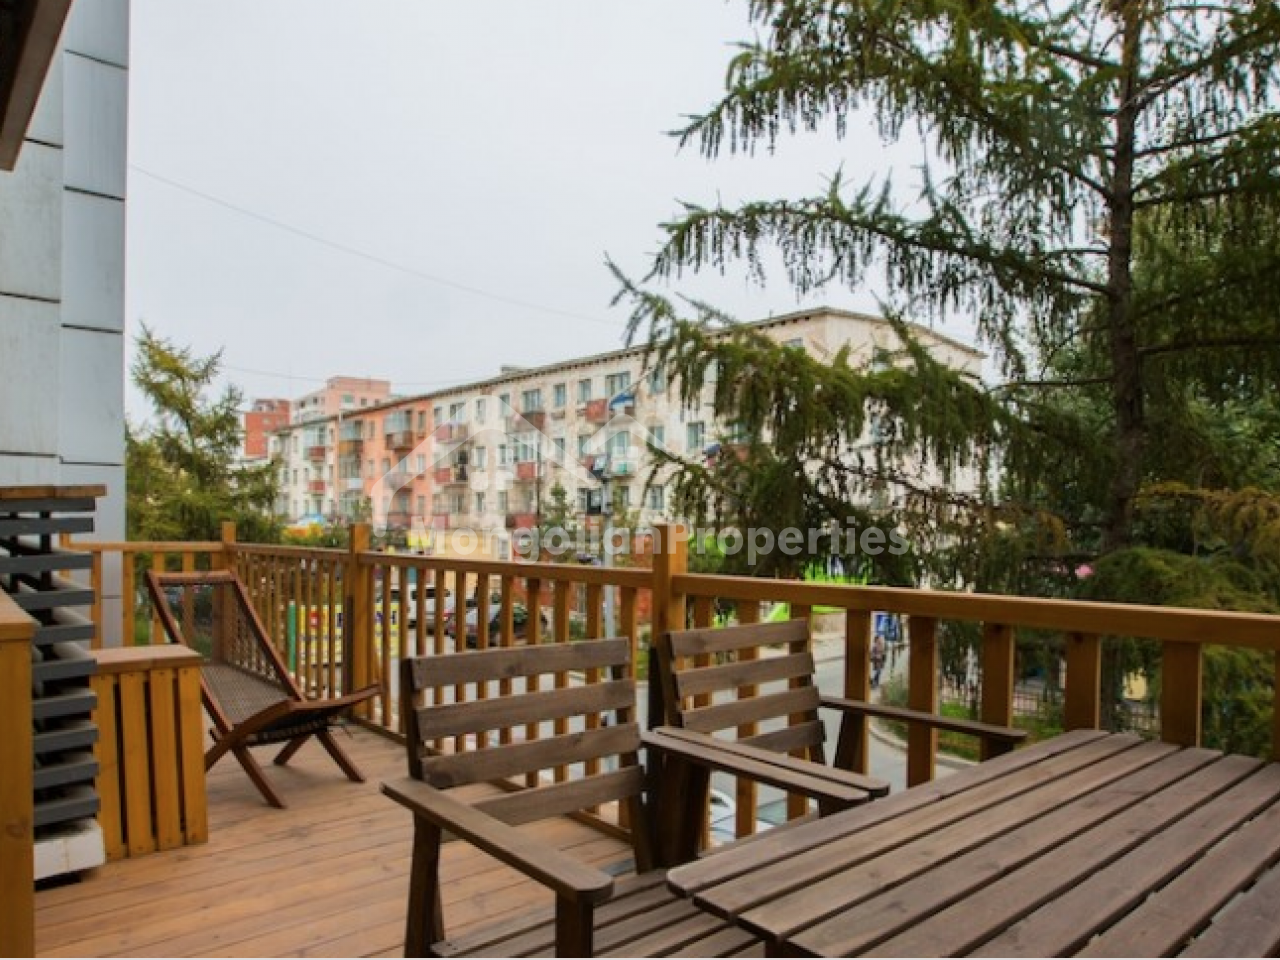 For rent : One room apartment with beautiful terrace